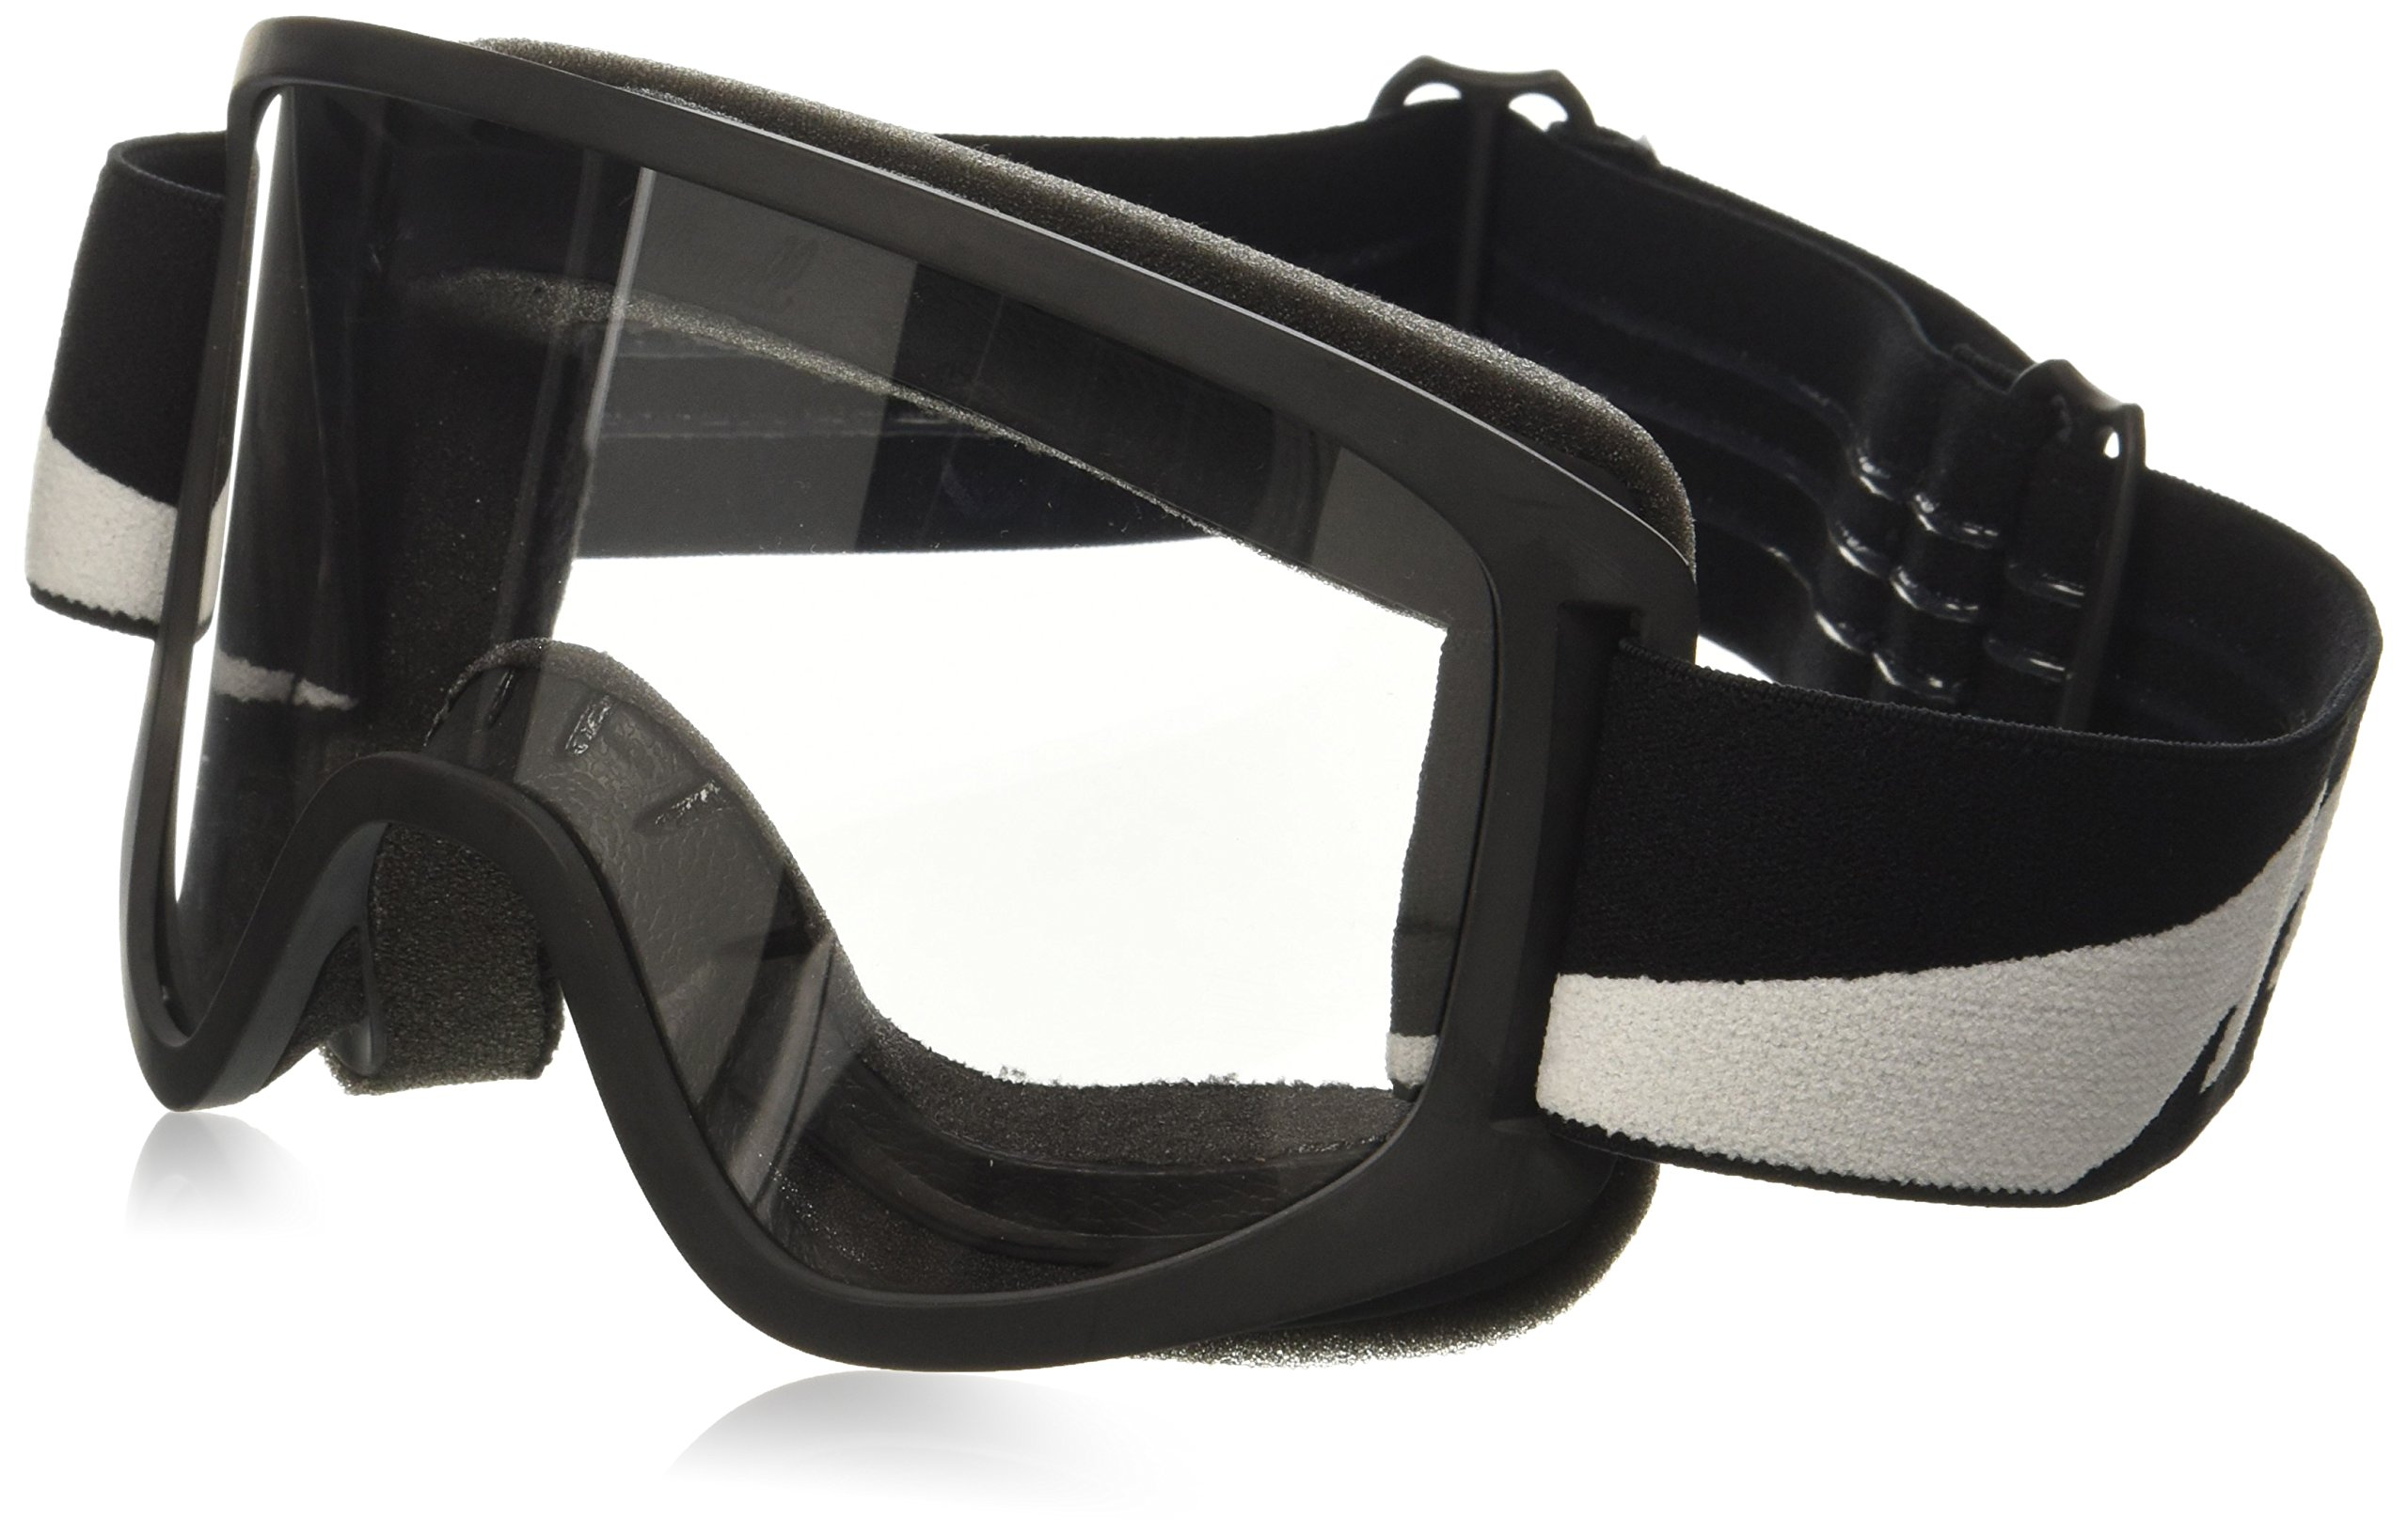 Biltwell (M2BLTBKWT) Script Bolts Moto 2.0 Goggles (Black, One Size Fits Most)